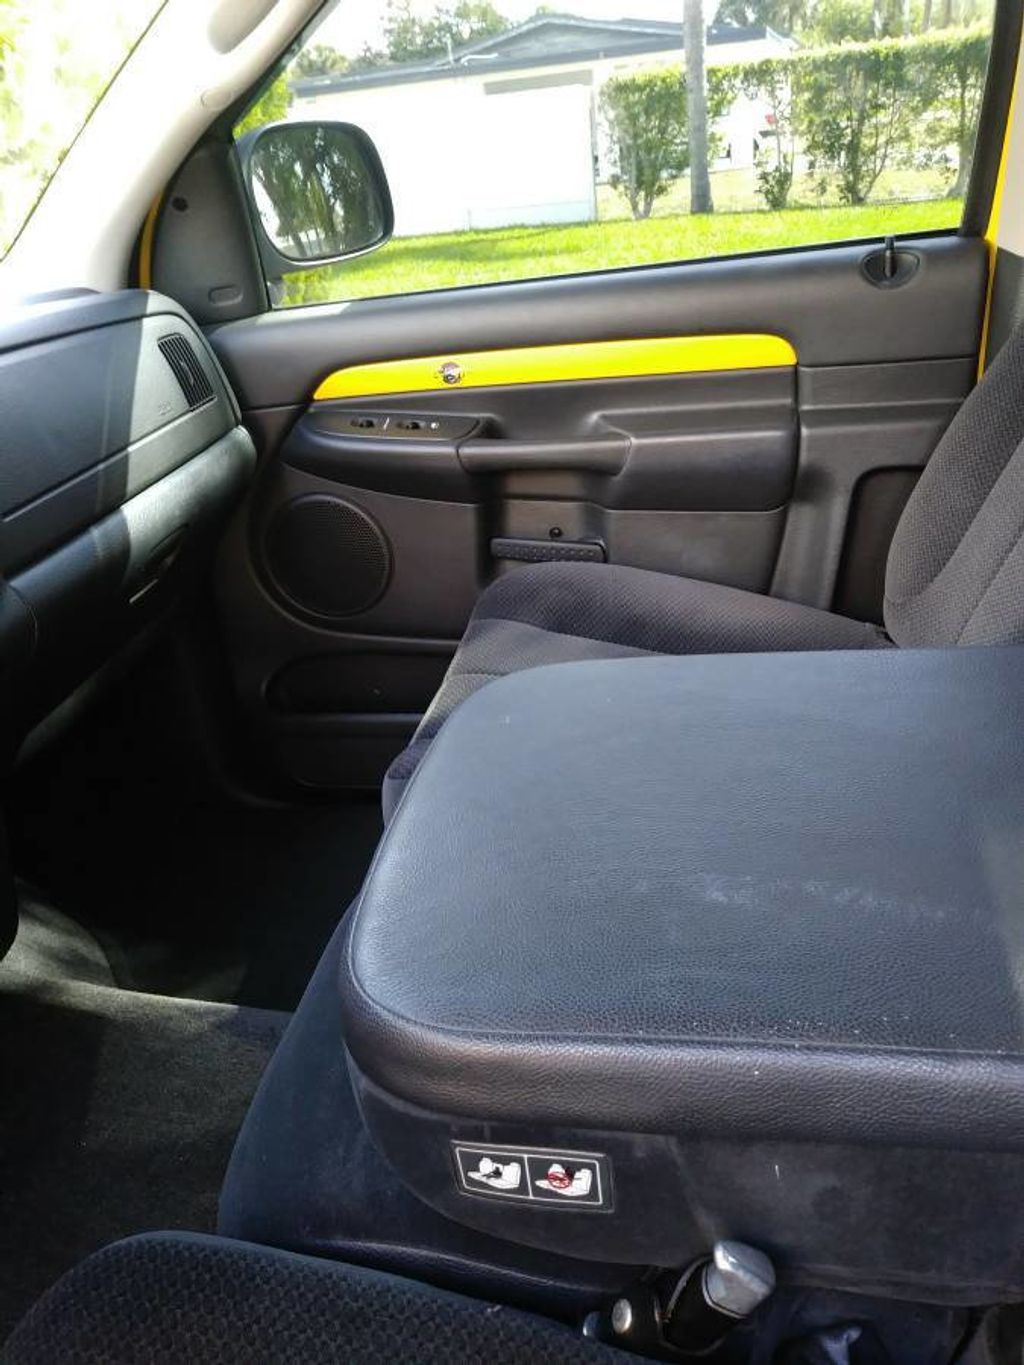 2005 Dodge Ram 1500 Rumble Bee Limited Edition For Sale - 17386933 - 15